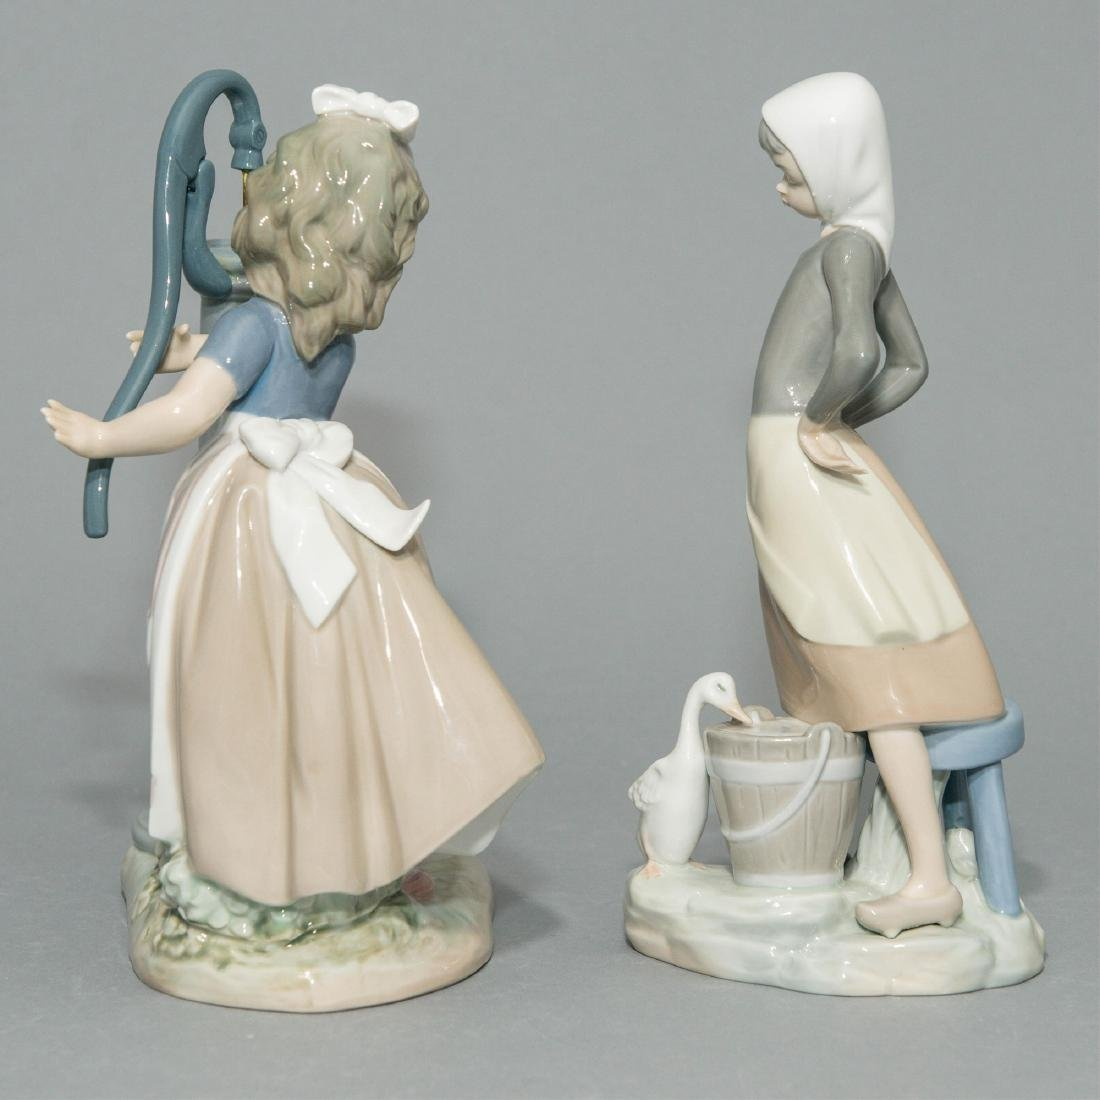 LLADRO GIRL WITH MILK PAIL AND SUMMER FIGURINES - 2